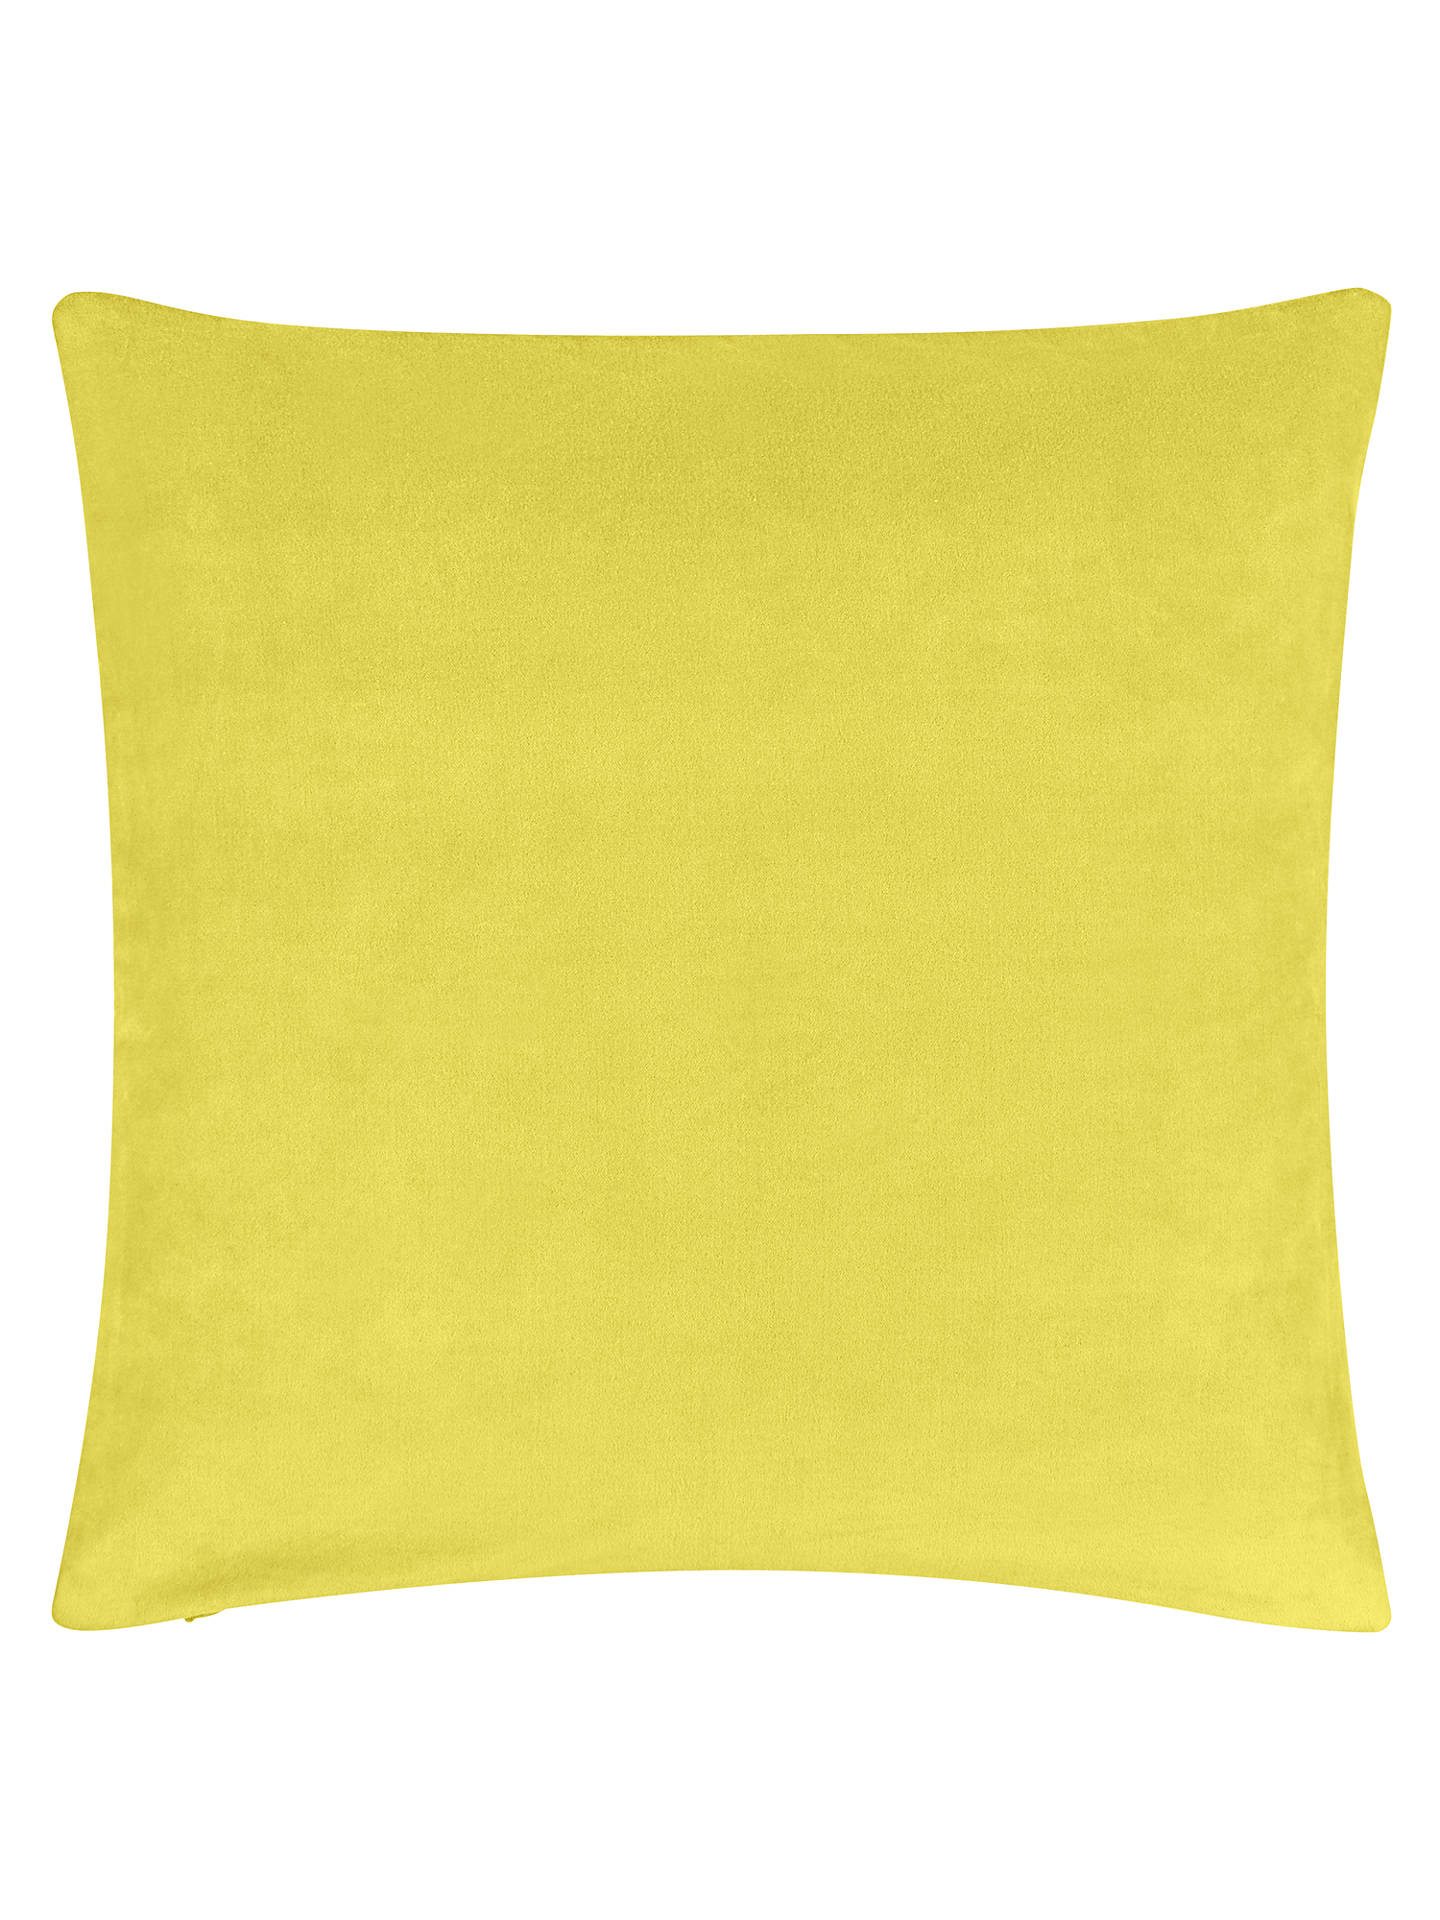 BuyJohn Lewis & Partners Plain Velvet Cushion, Citrine Online at johnlewis.com